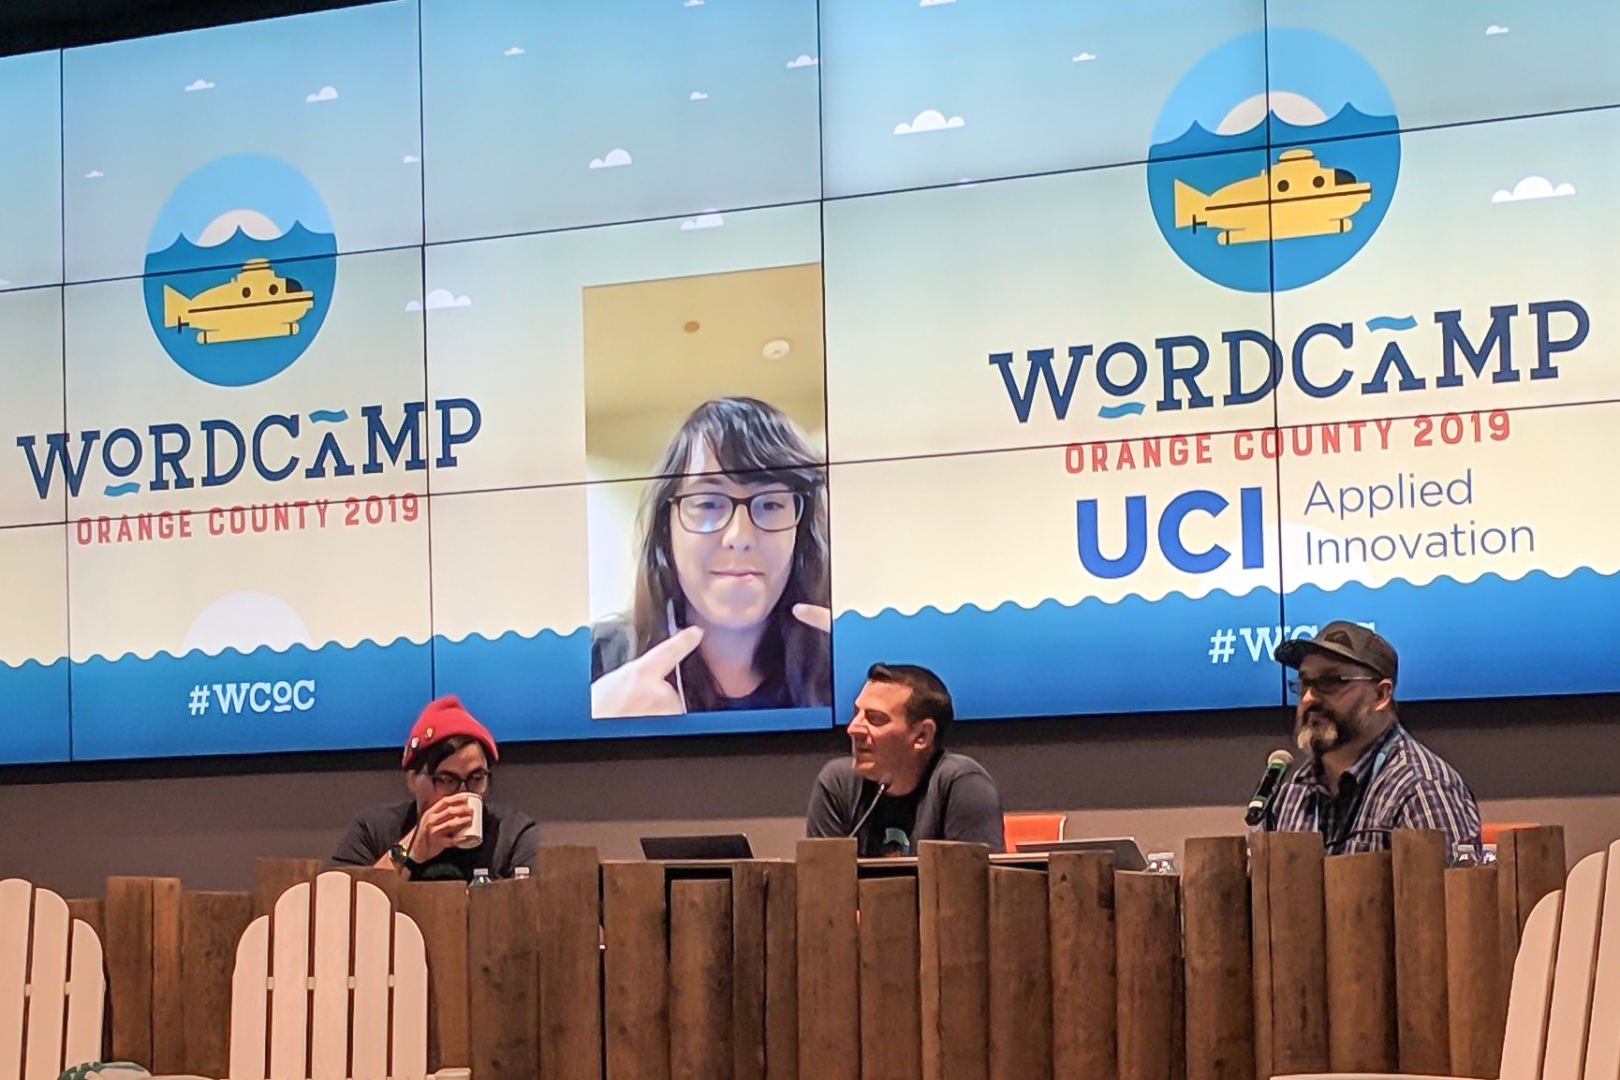 WordCamp Orange County, WordCamp OC, WCOC, WordPress